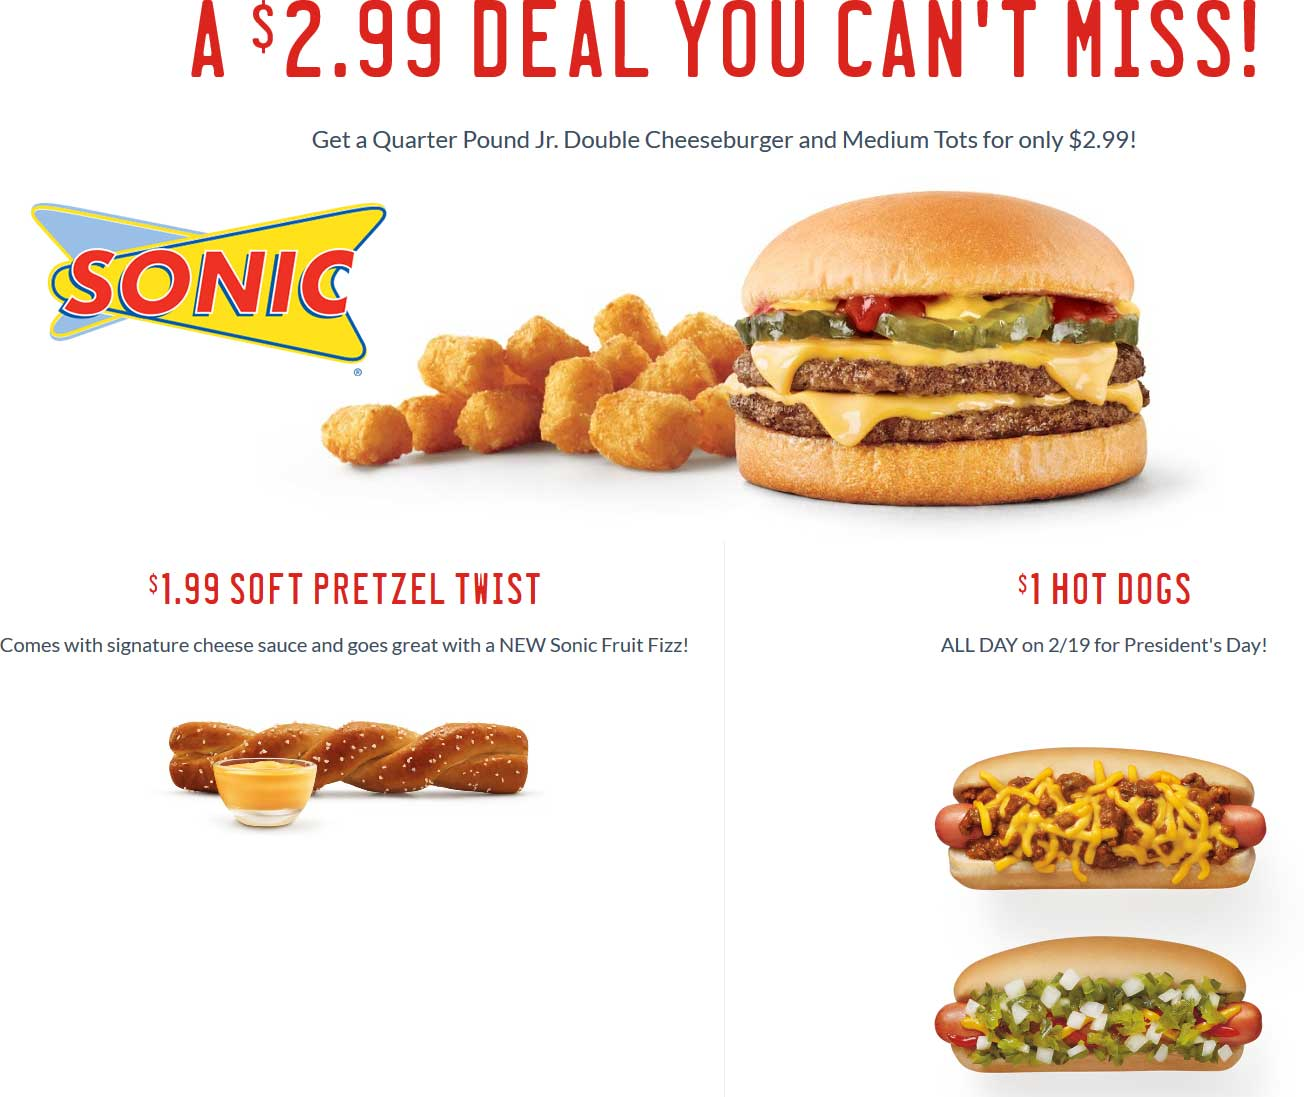 Sonic Drive-In Coupon February 2018 $1 hot dogs the 19th at Sonic Drive-In restaurants